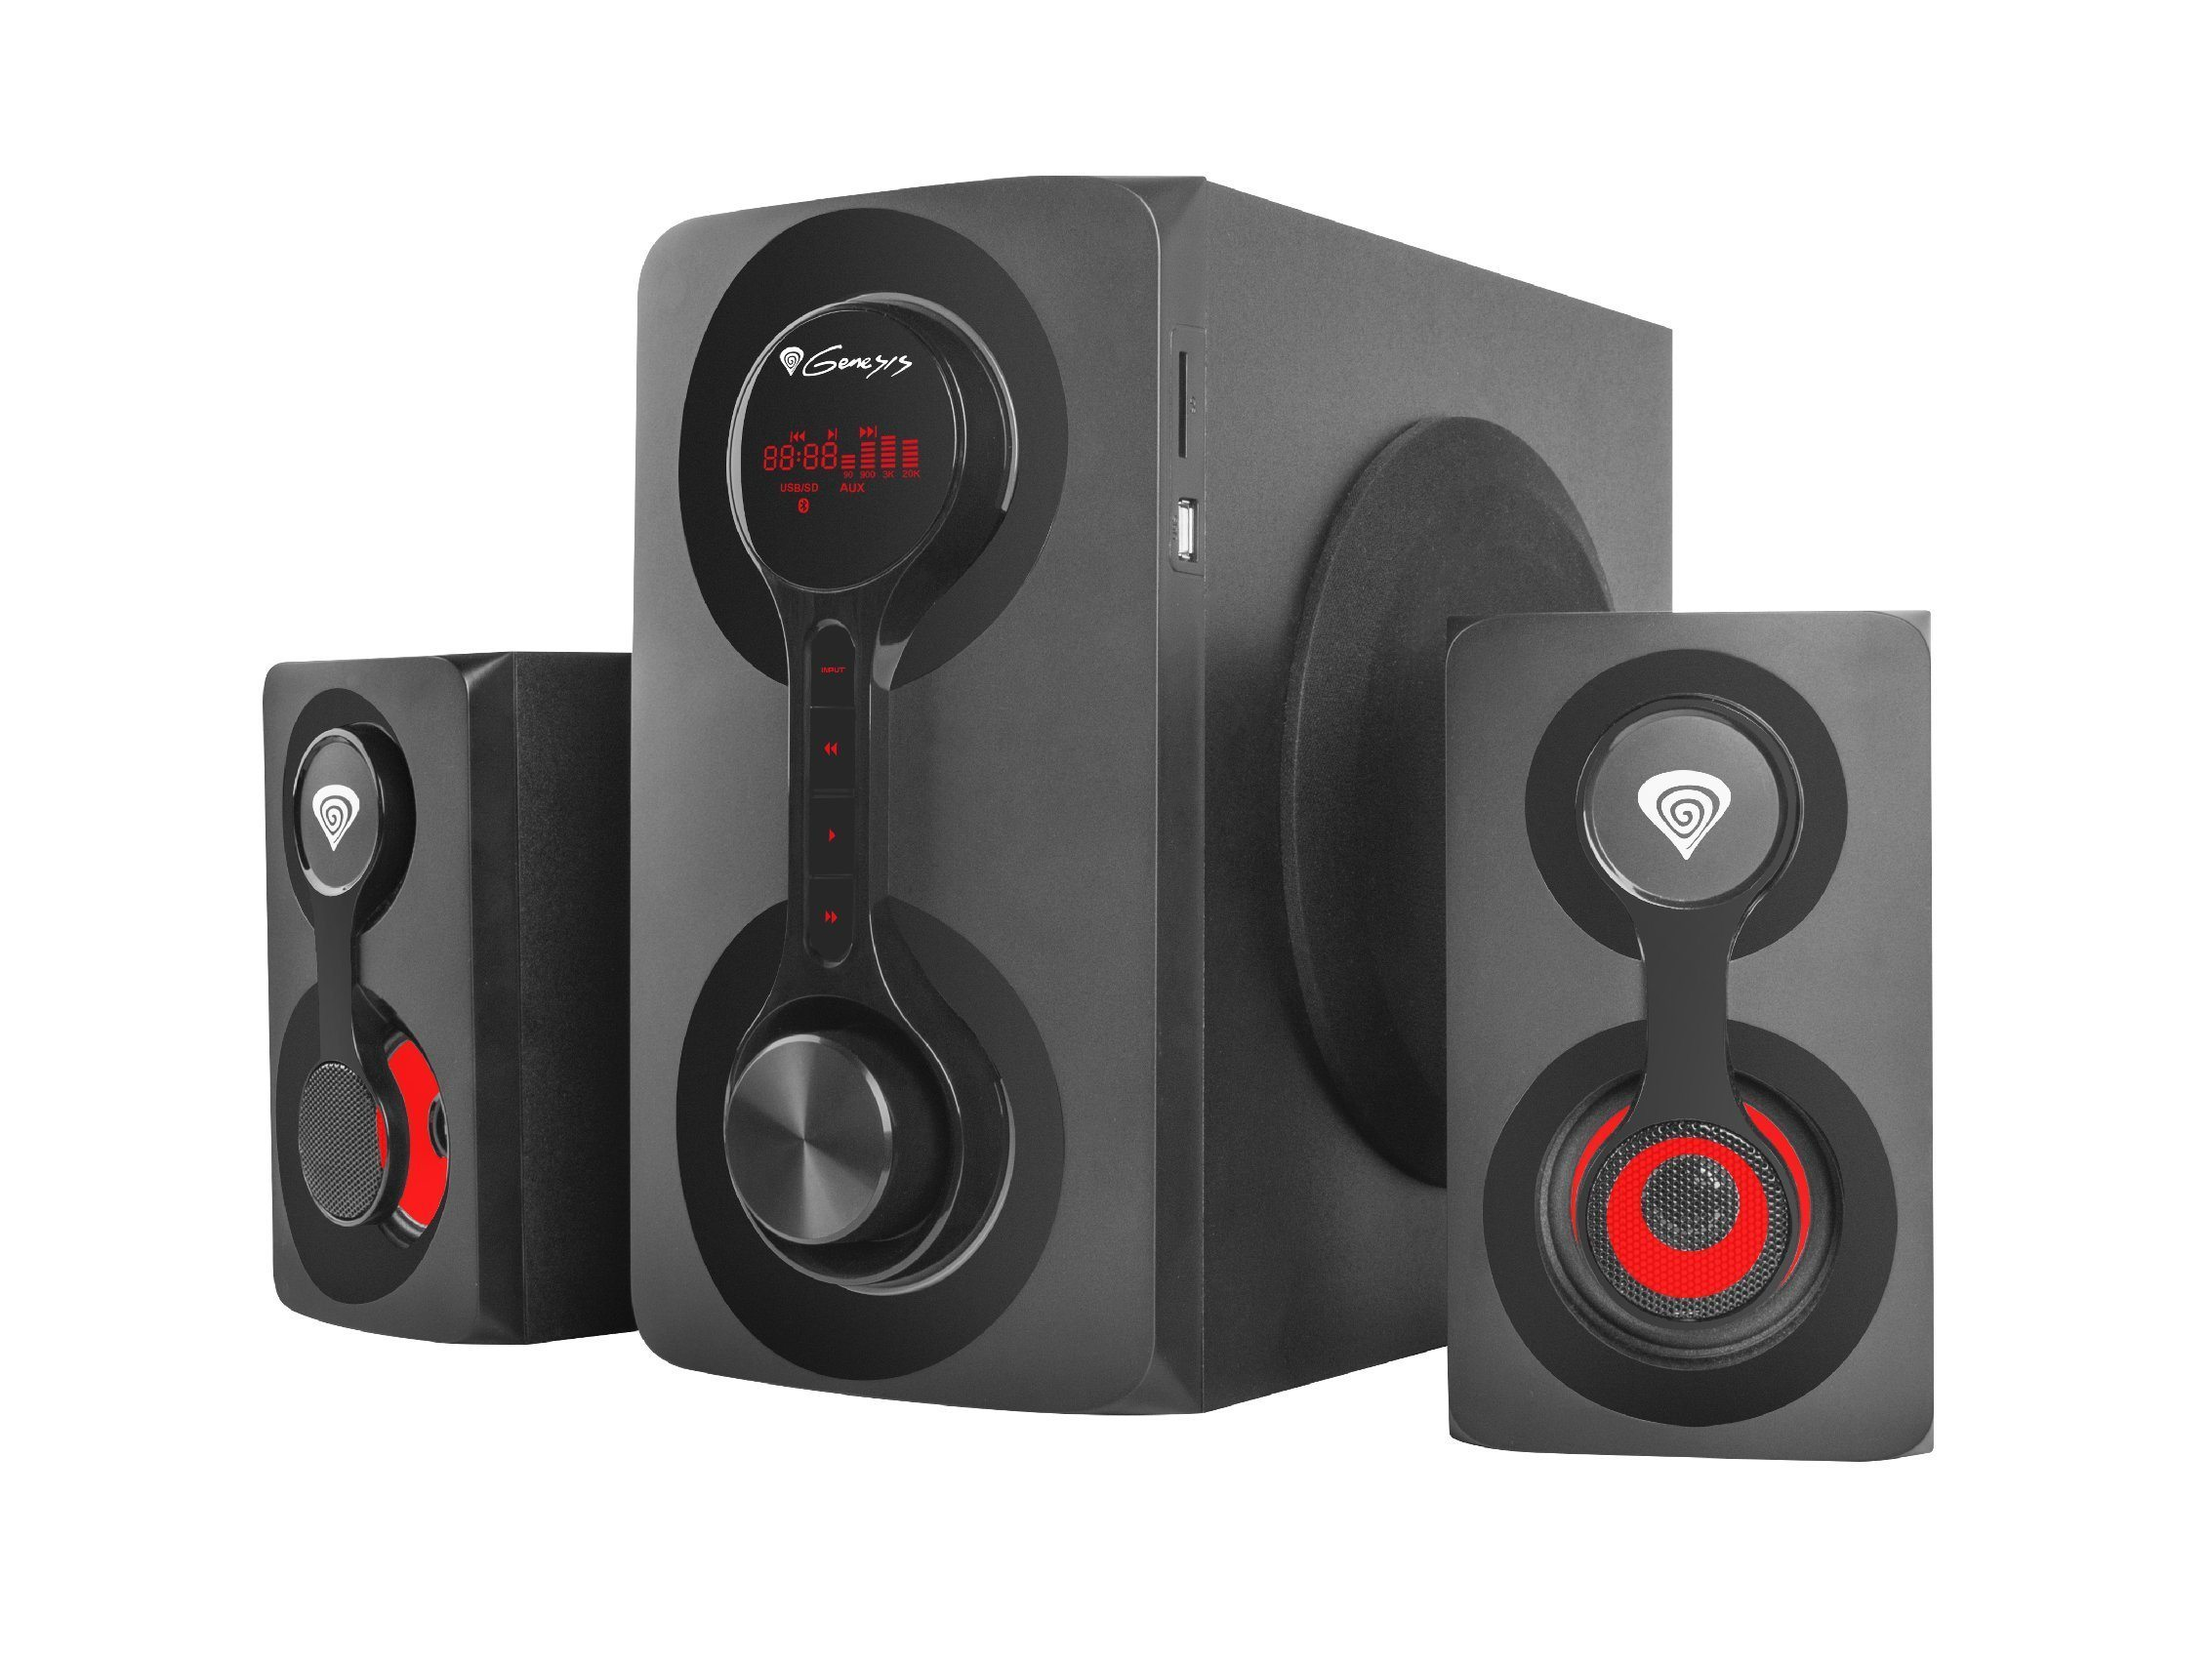 Genesis тонколони Speakers 2.1 - HELIUM 700BT - 60W RMS, Bluetooth 4.2, USB/SD card MP3 player, remote - NCS-1307